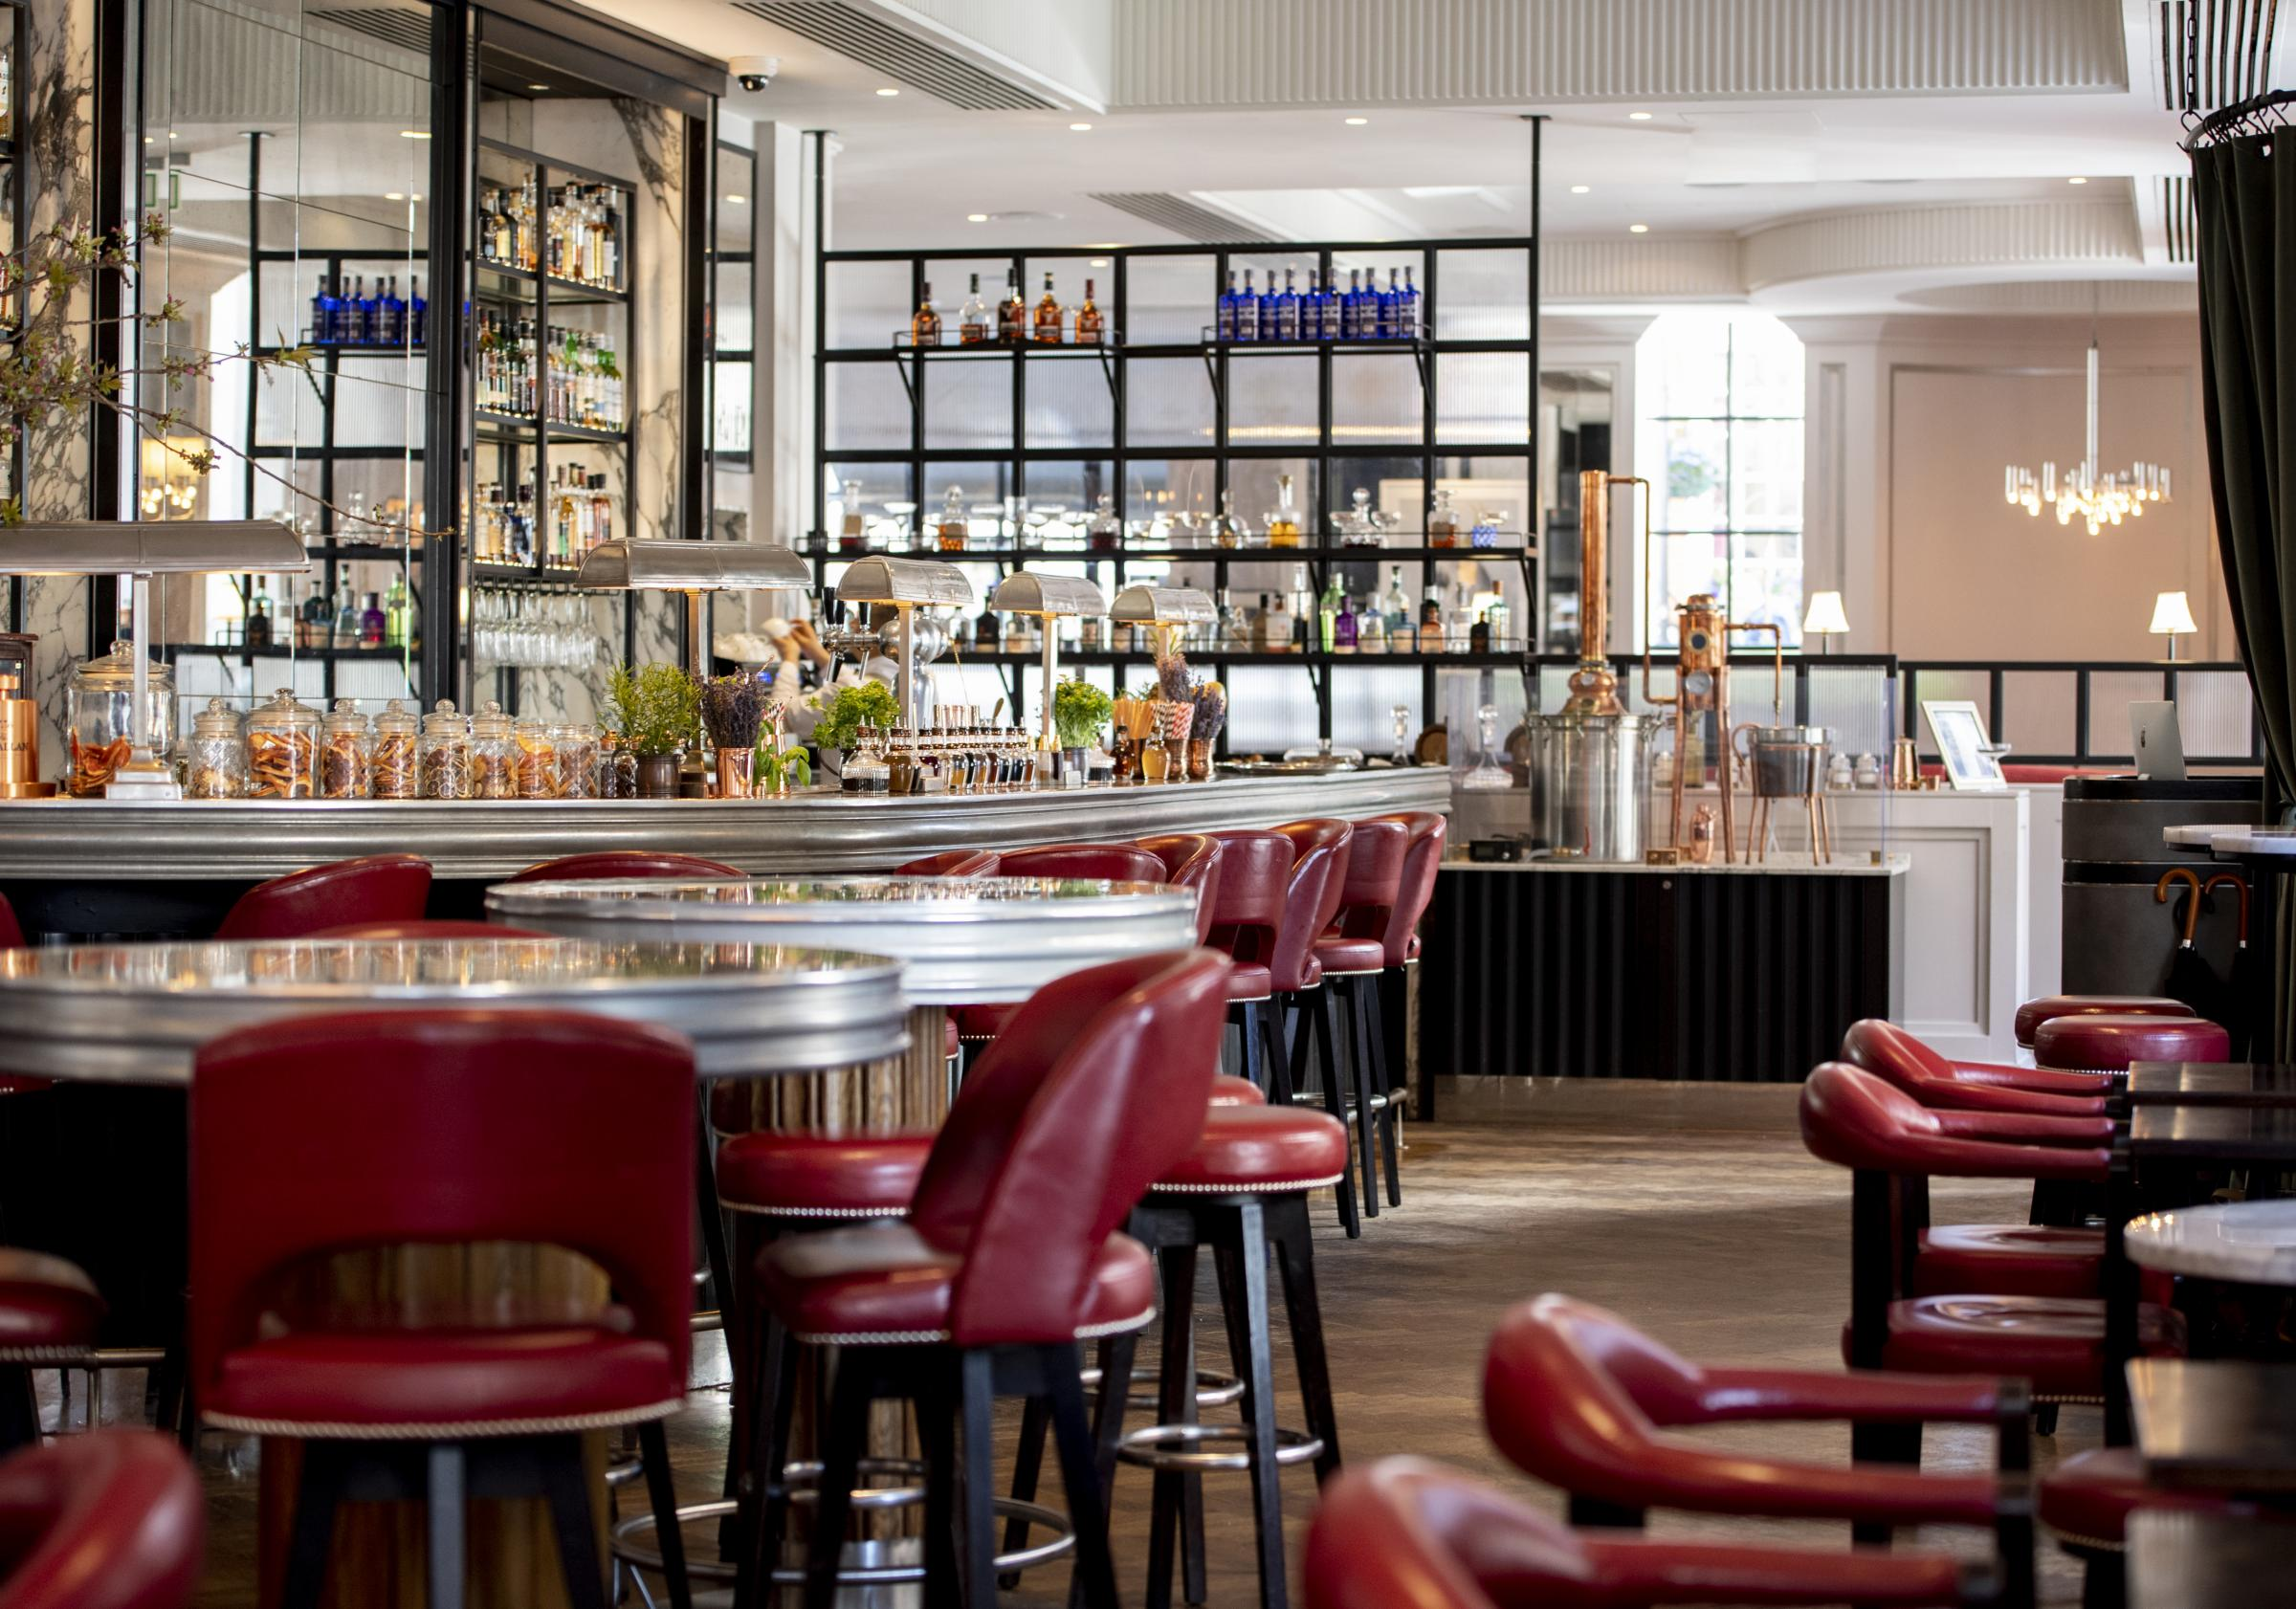 City break full of food and shopping in London's Marylebone Village